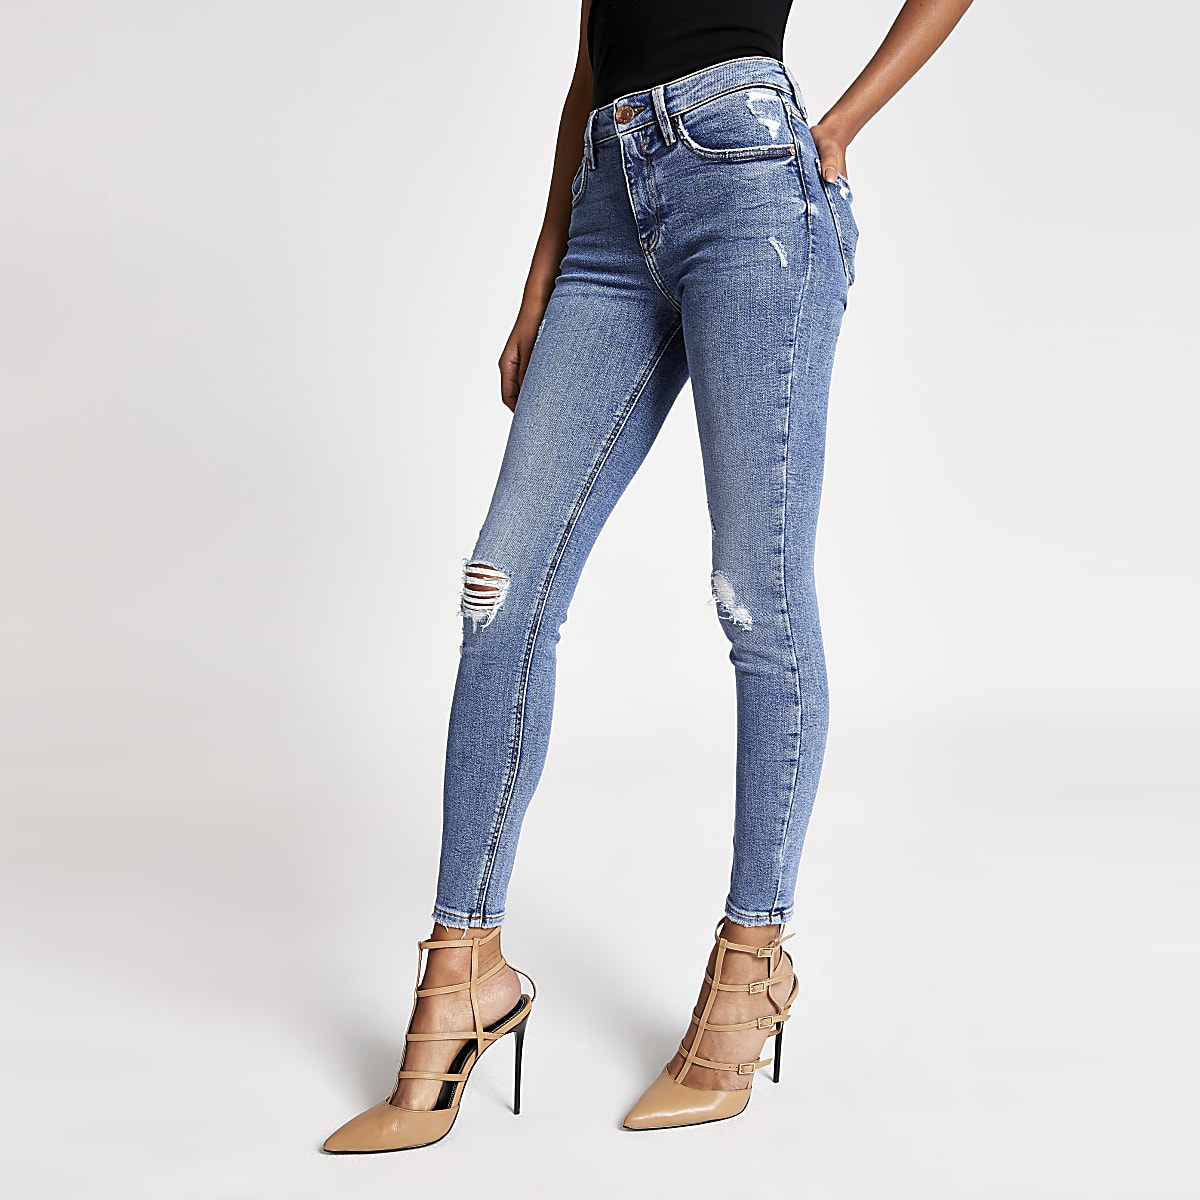 Amelie - Blauwe ripped superskinny jeans